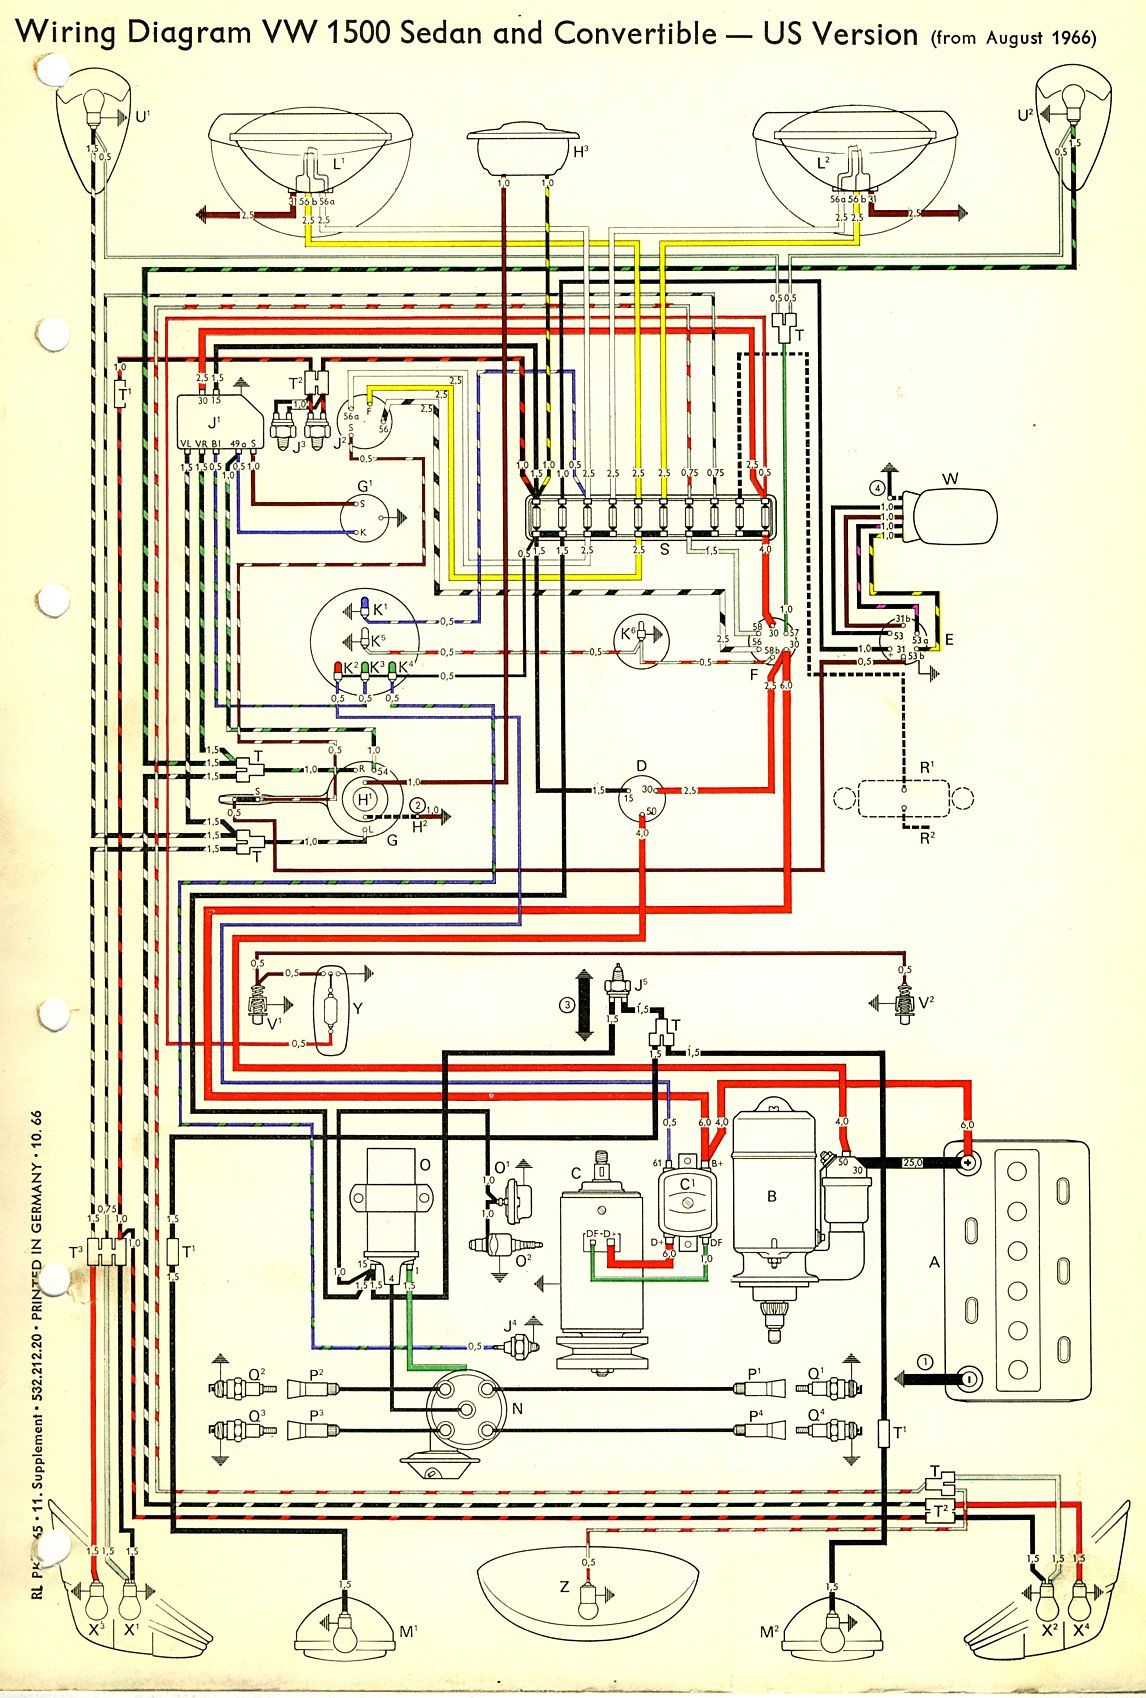 1967 Beetle Wiring Diagram (USA) | Vw super beetle, Volkswagen beetle, Vw  beetlesPinterest